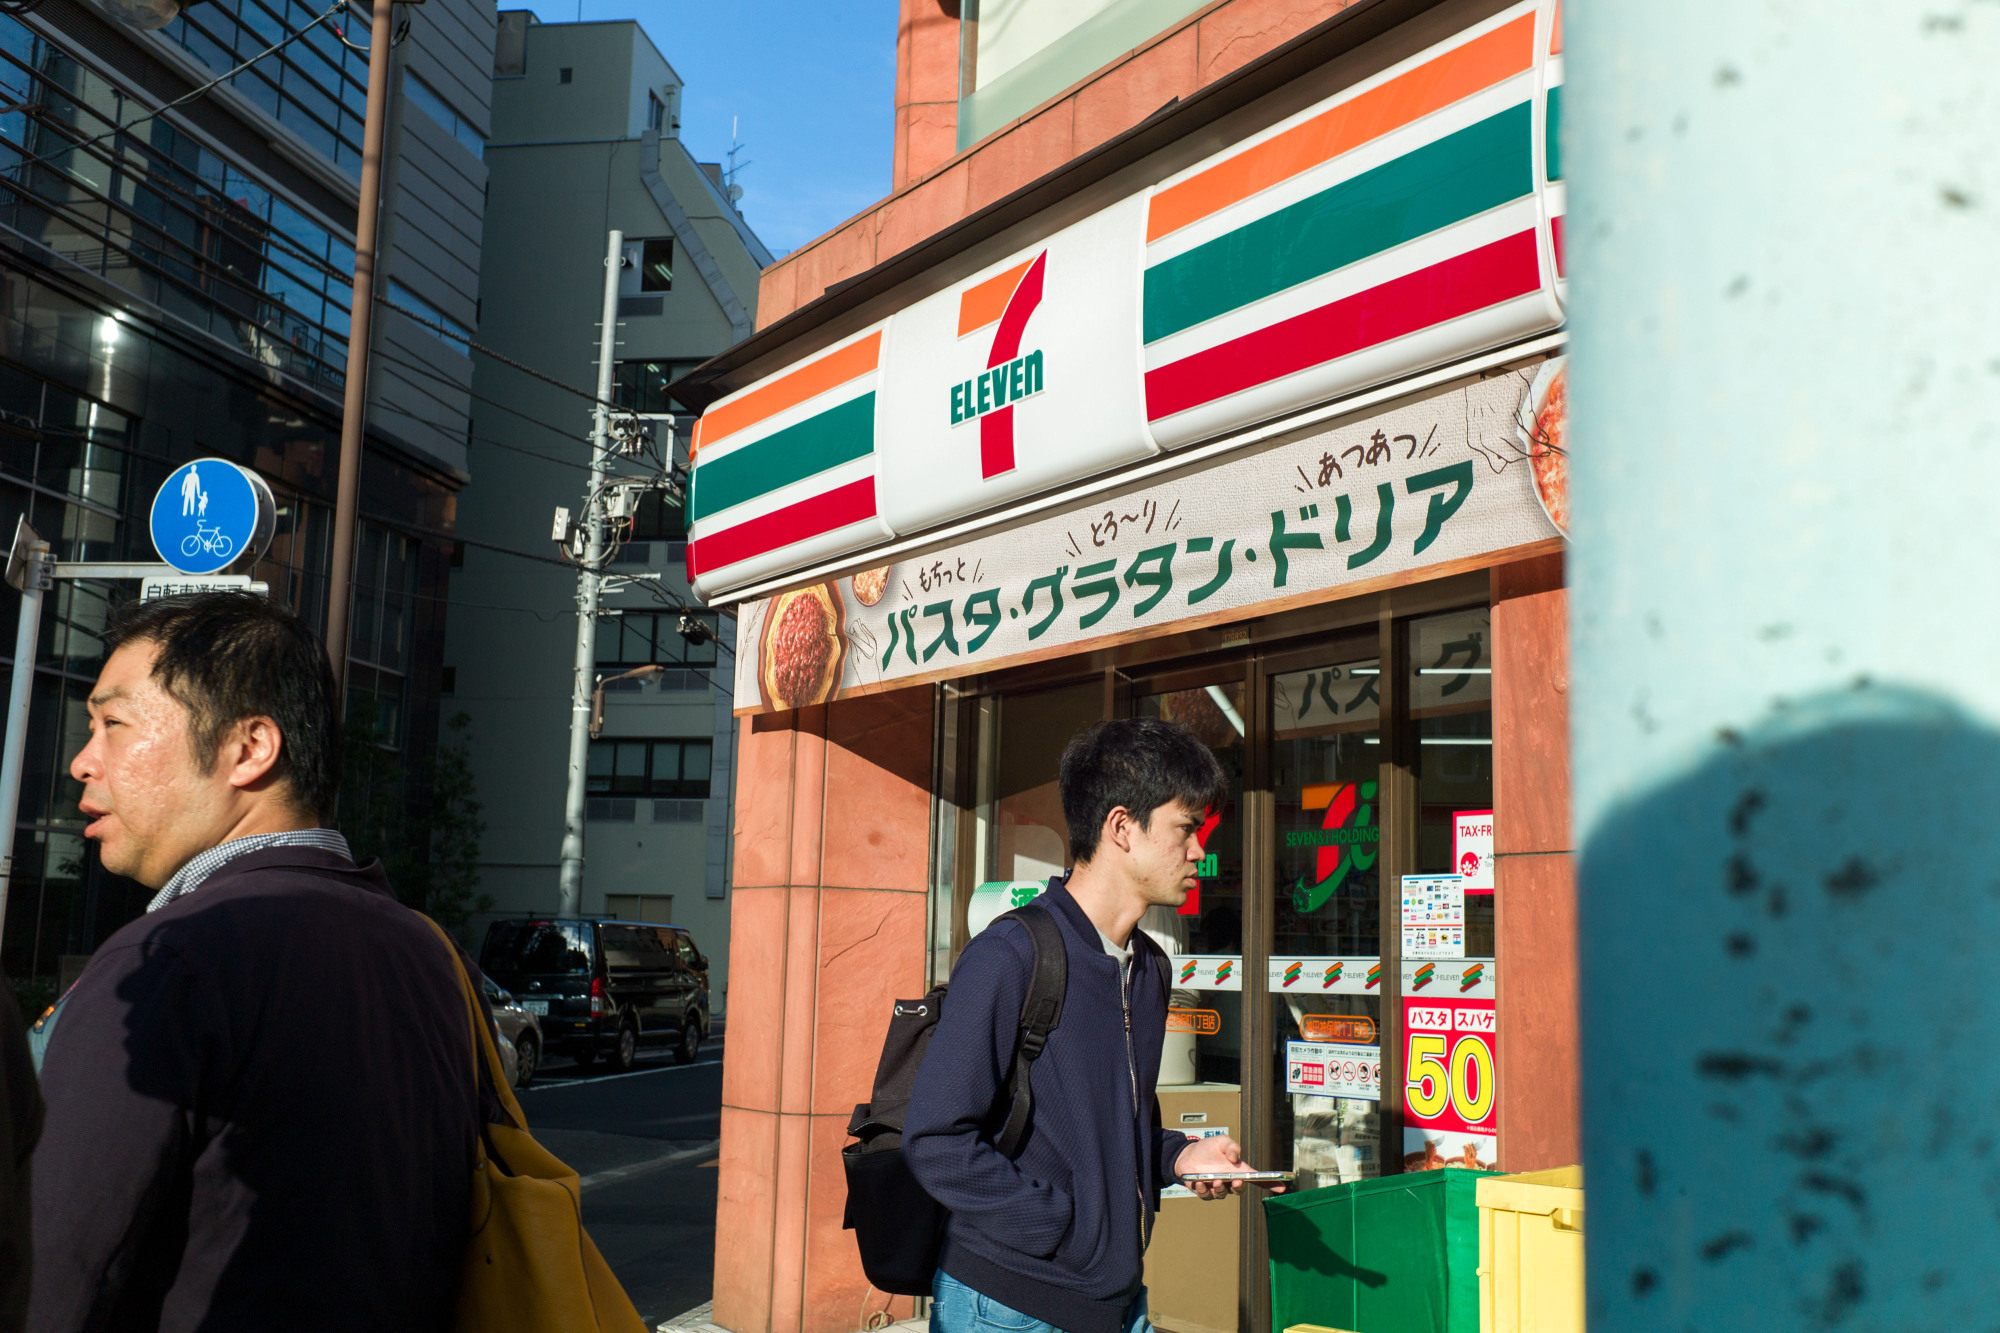 Pedestrians walk past a Seven-Eleven convenience store in Tokyo, operated by Seven & I Holdings Co., in October 2017. Japan's three largest convenience store operators now plan to stop selling pornographic magazines by the end of August. | BLOOMBERG